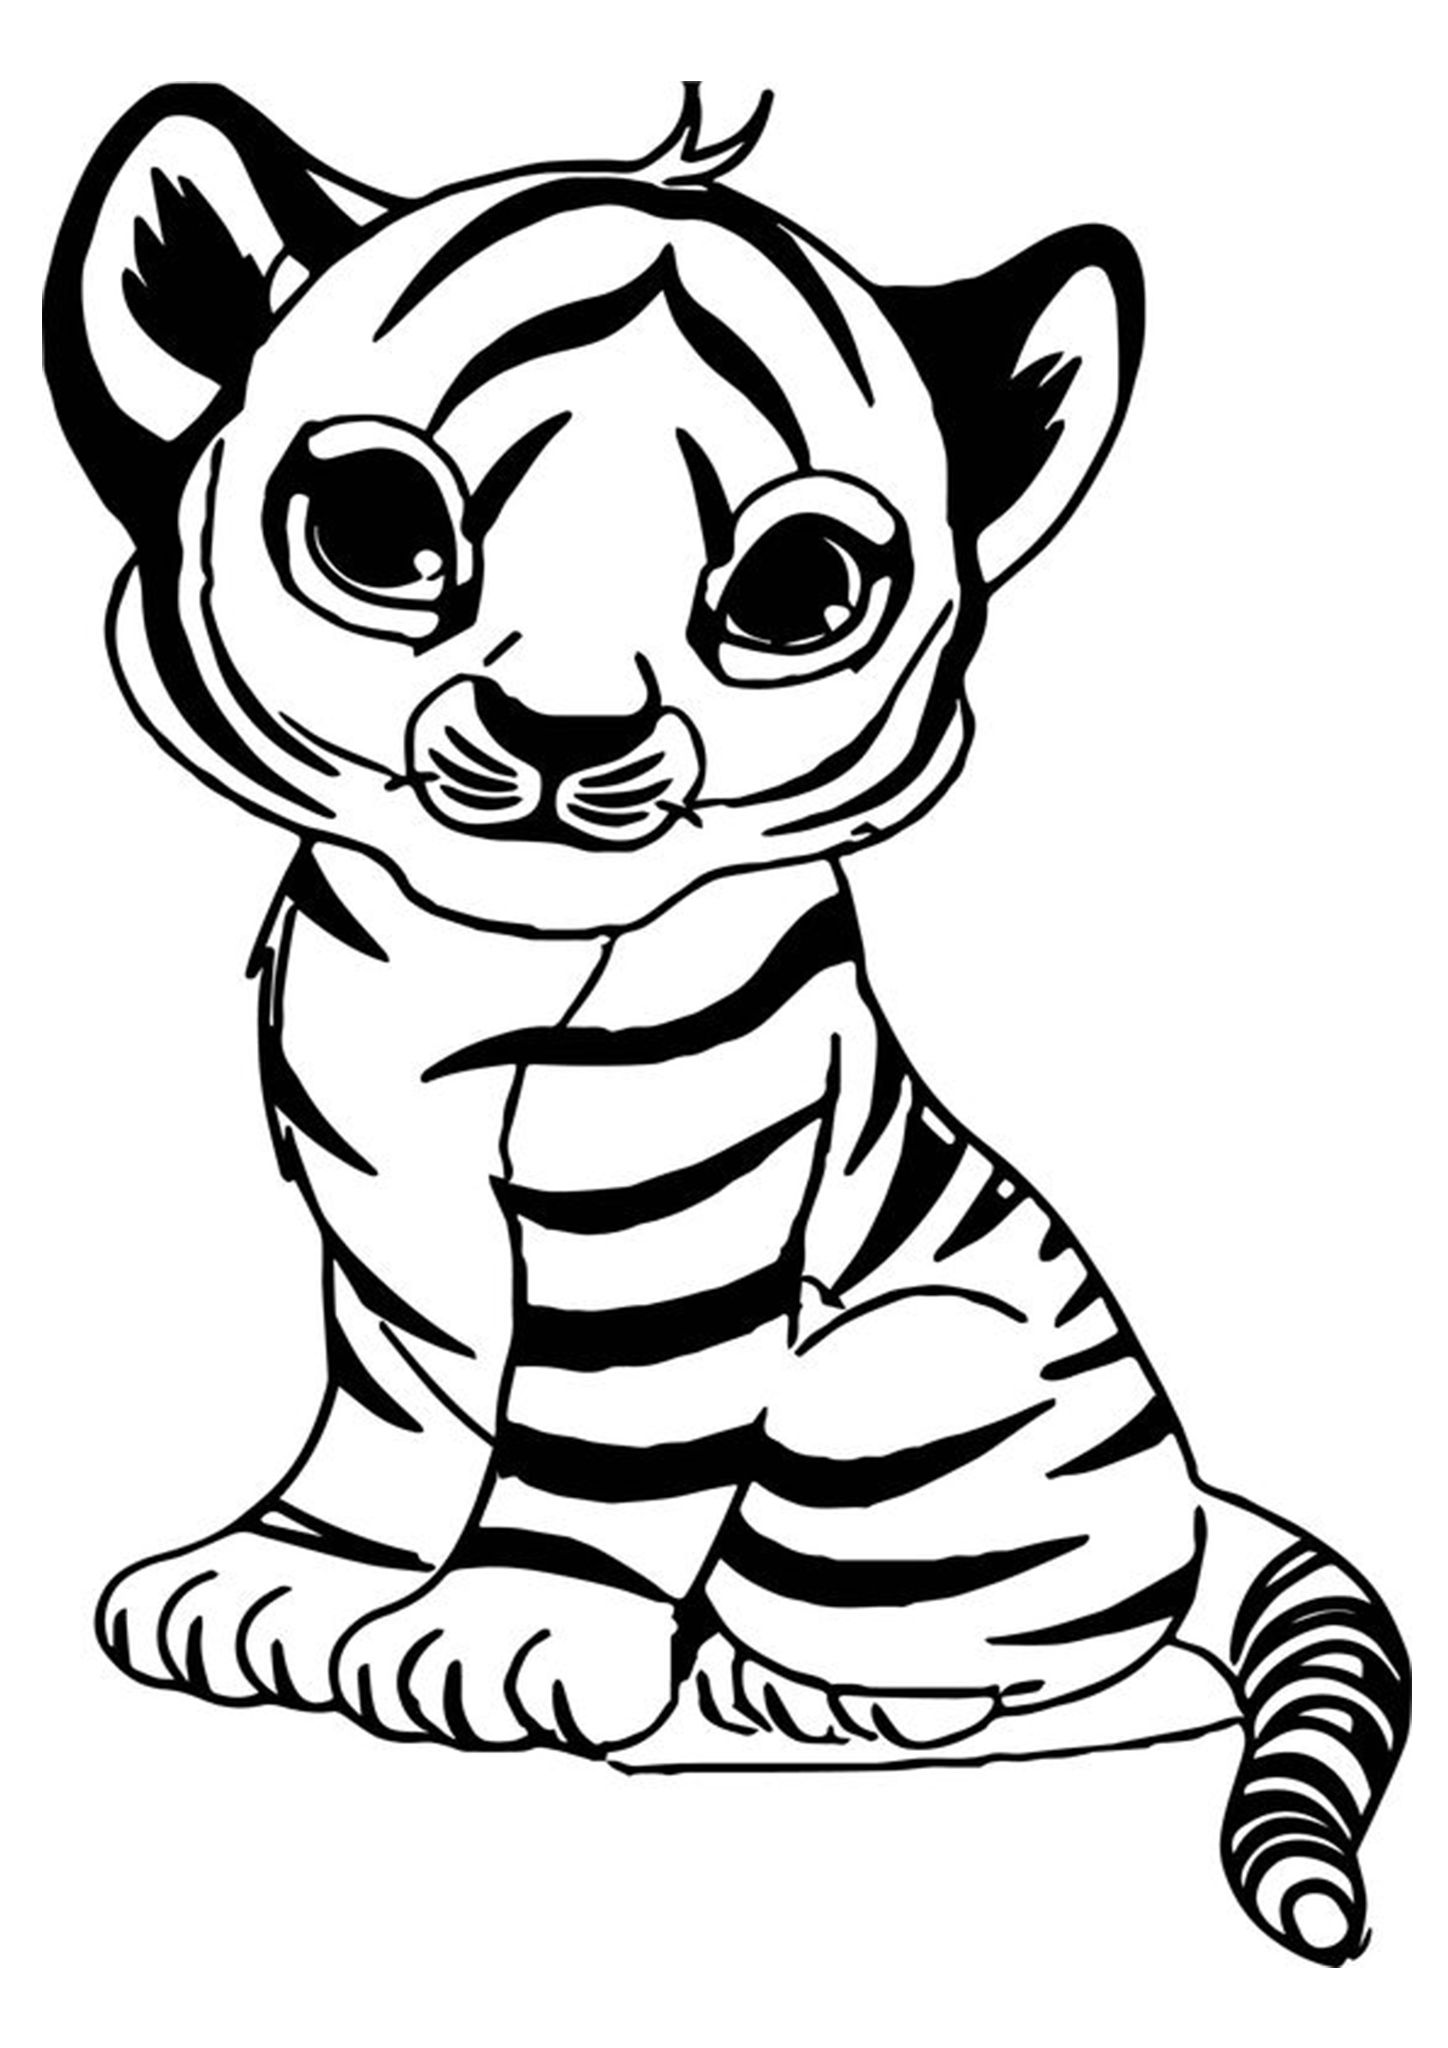 Free Easy To Print Tiger Coloring Pages Zoo Animal Coloring Pages Zoo Coloring Pages Cartoon Coloring Pages